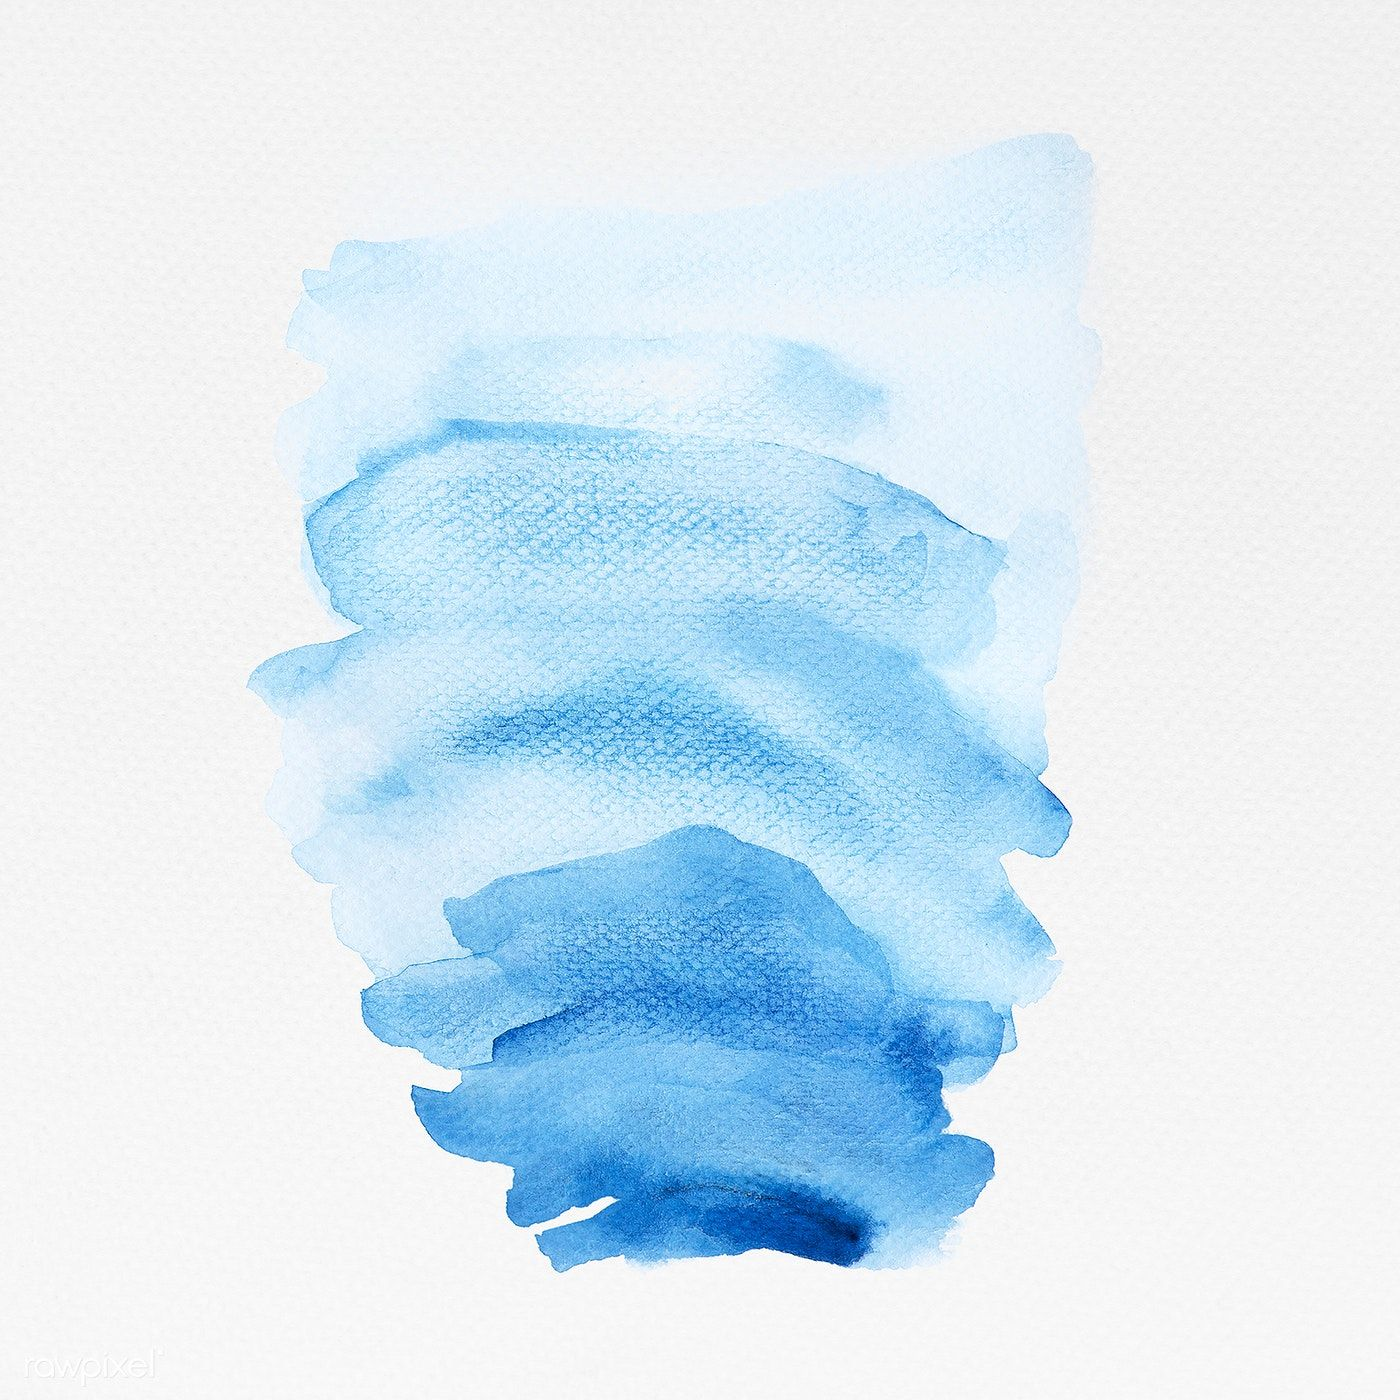 Shades Of Blue Watercolor Brush Strokes Illustration Free Image